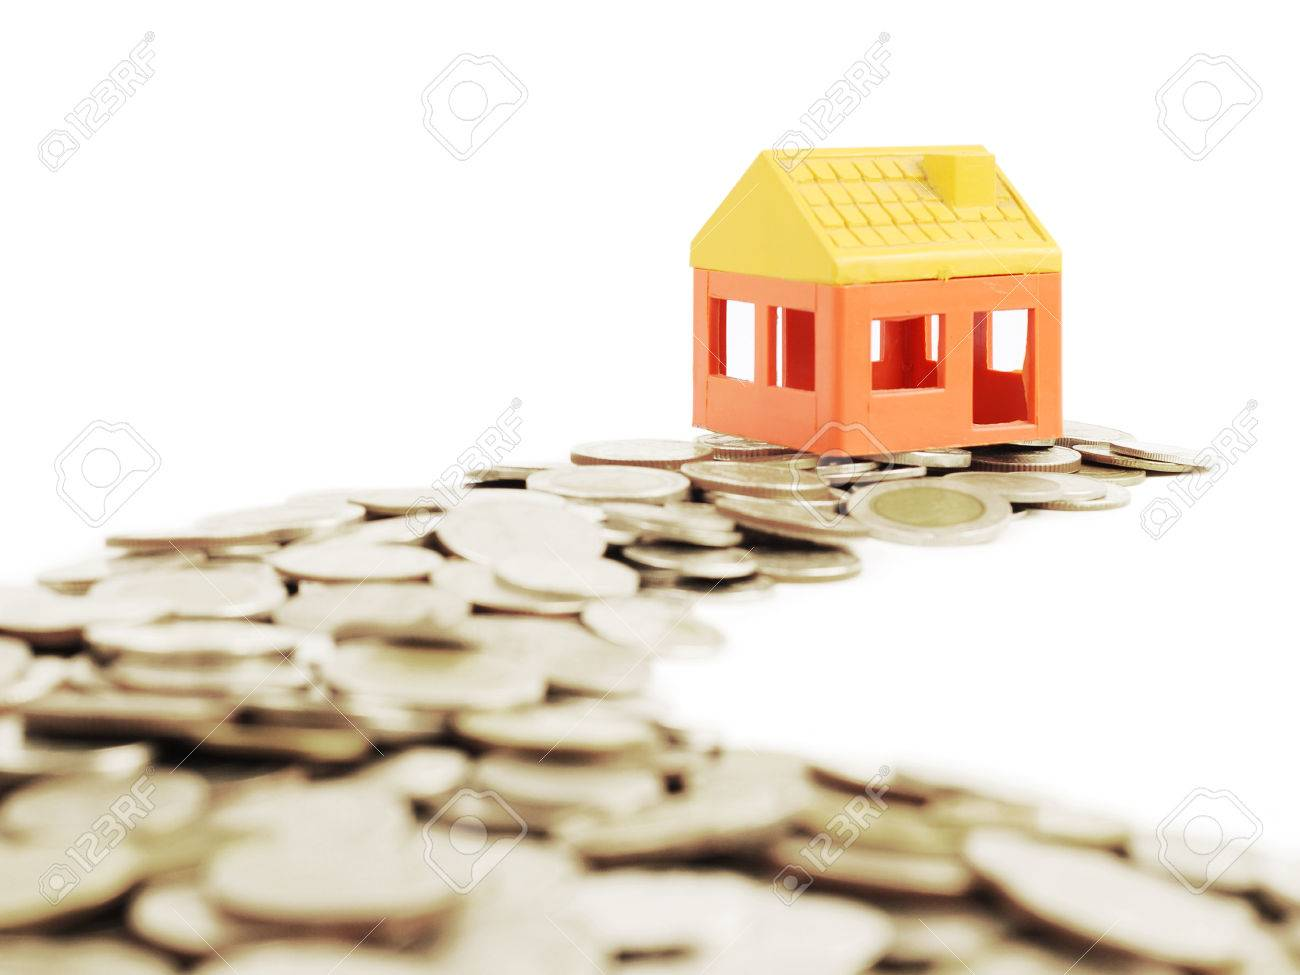 The way of moneys to model house ,business concept Stock Photo - 25226586